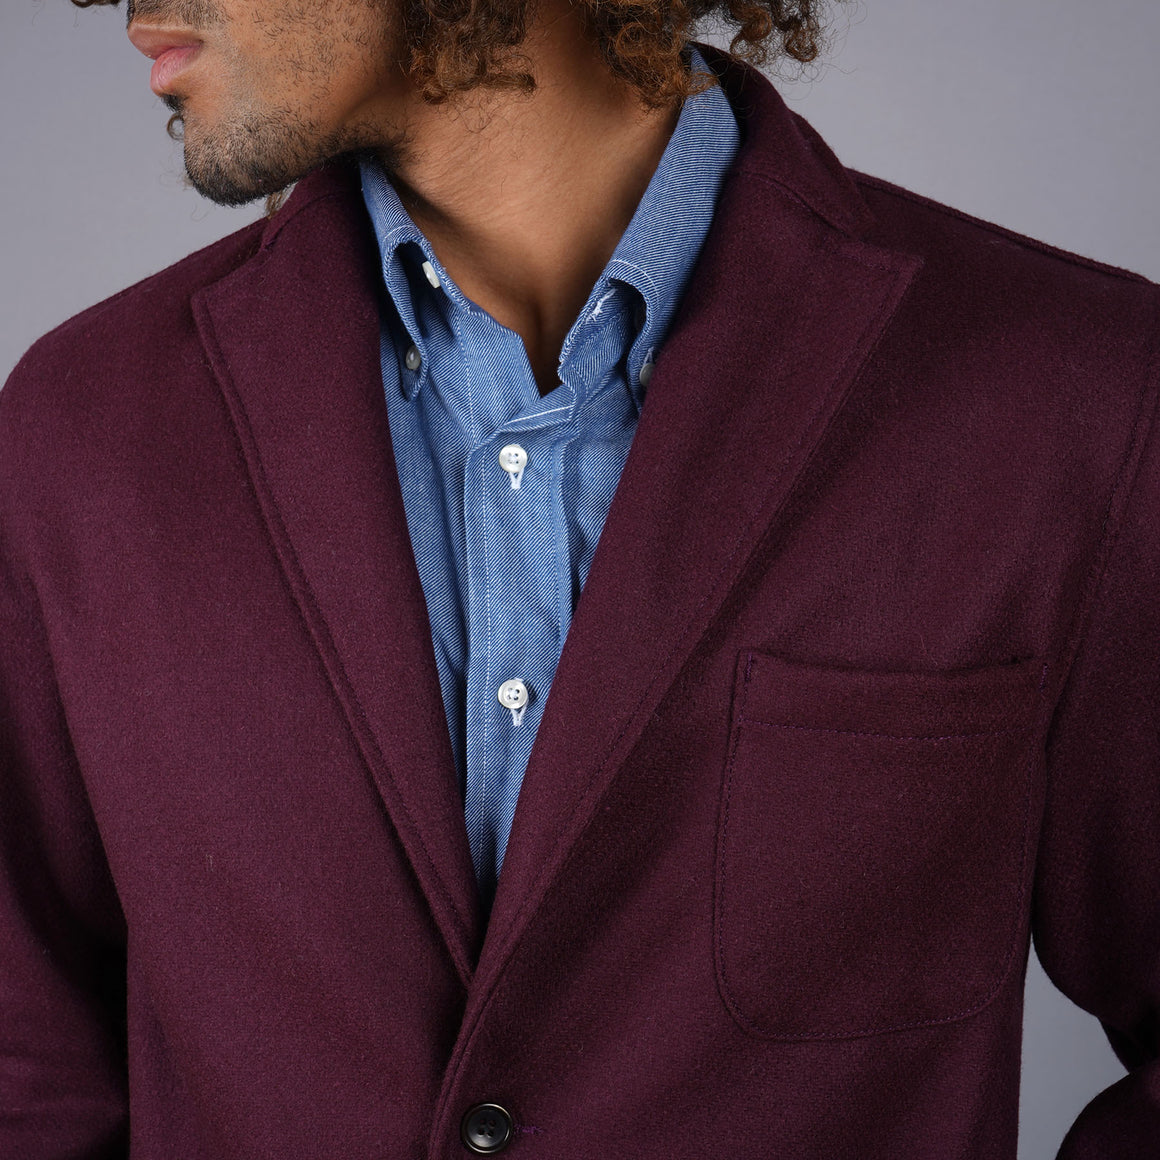 Sinclair Sportcoat in Pendleton Oxblood Tweed